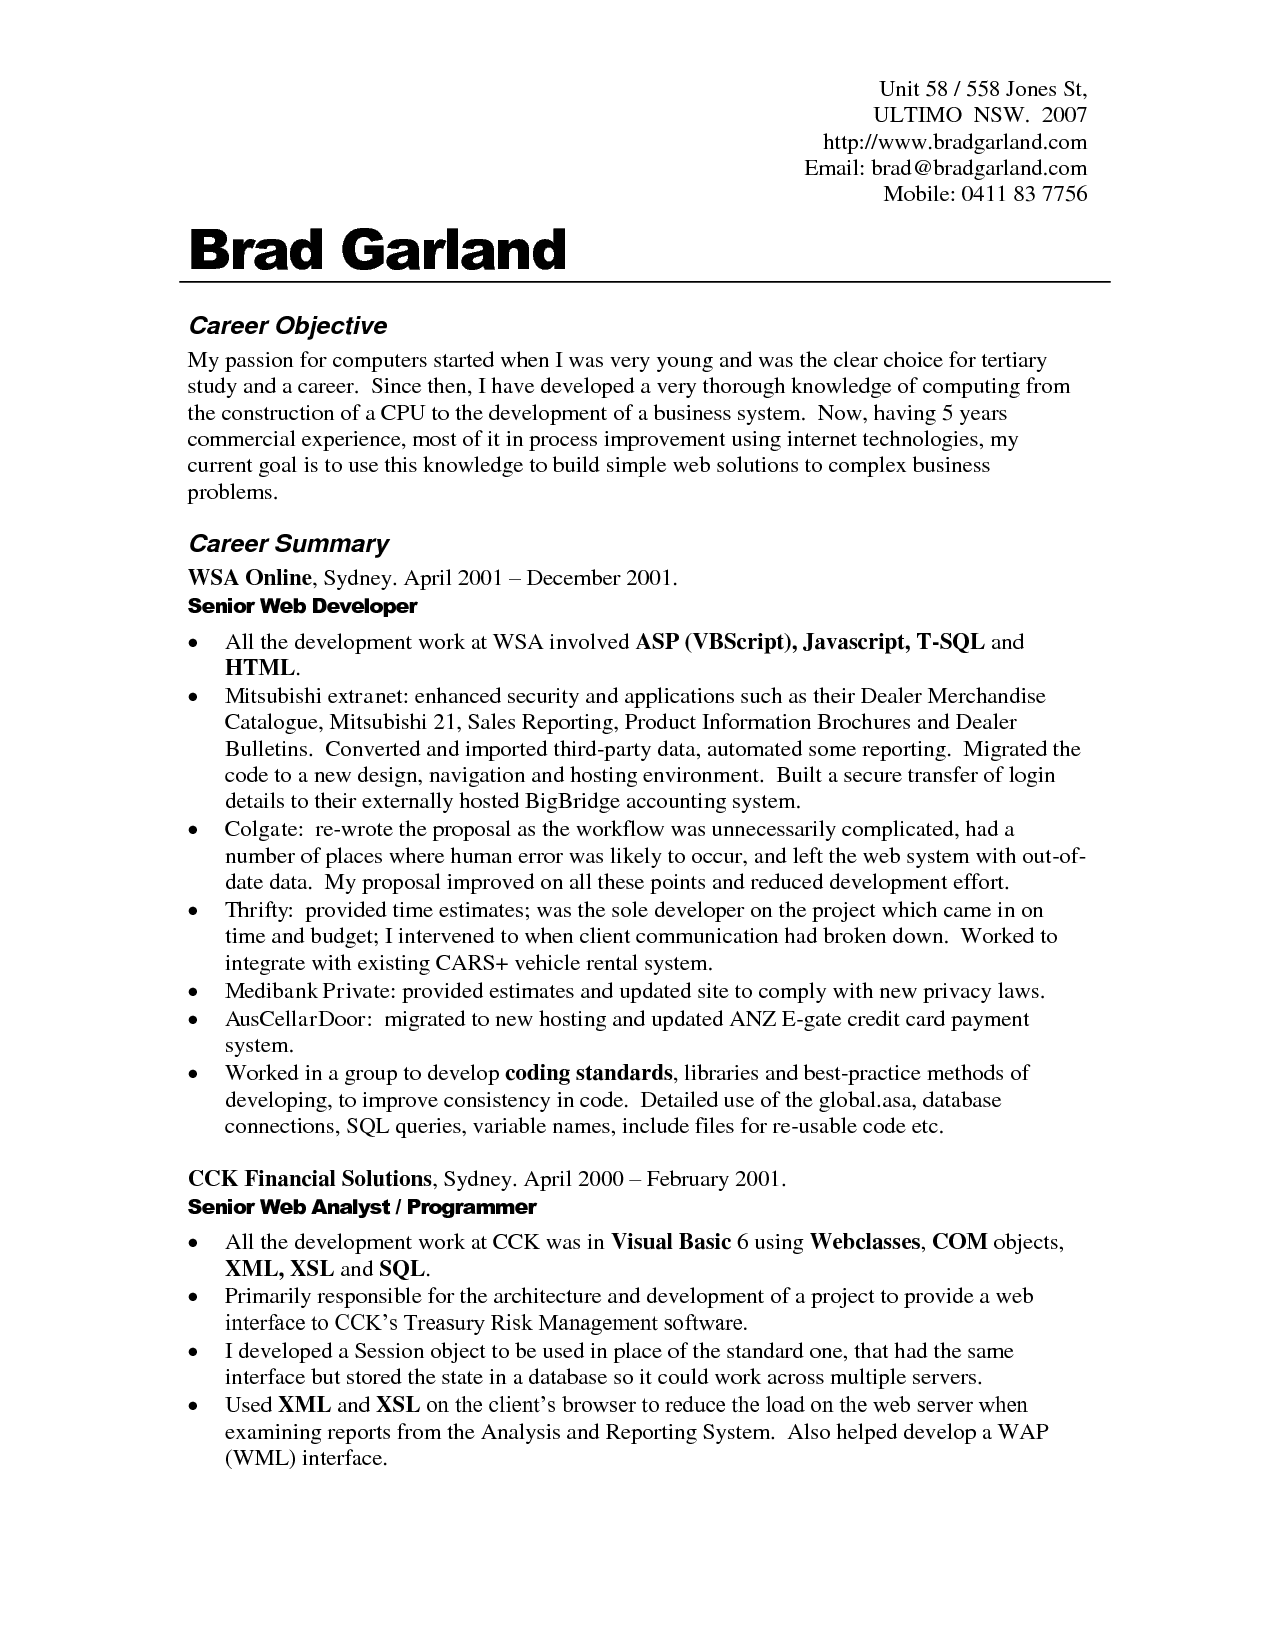 career statements - Career Objective Statements For Resume